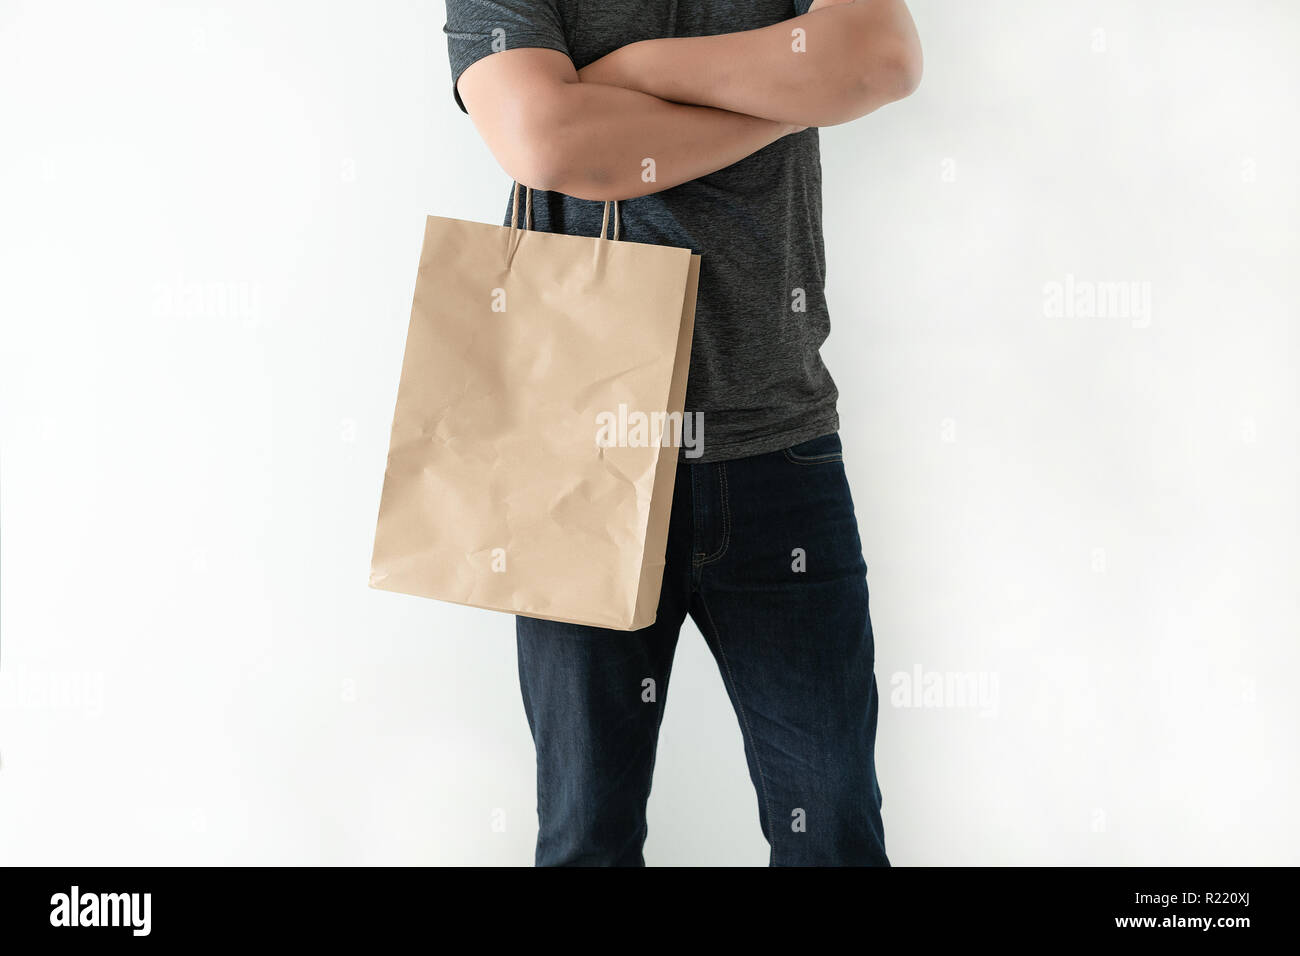 Consumer pack product Man shows bag mock up show Stock Photo